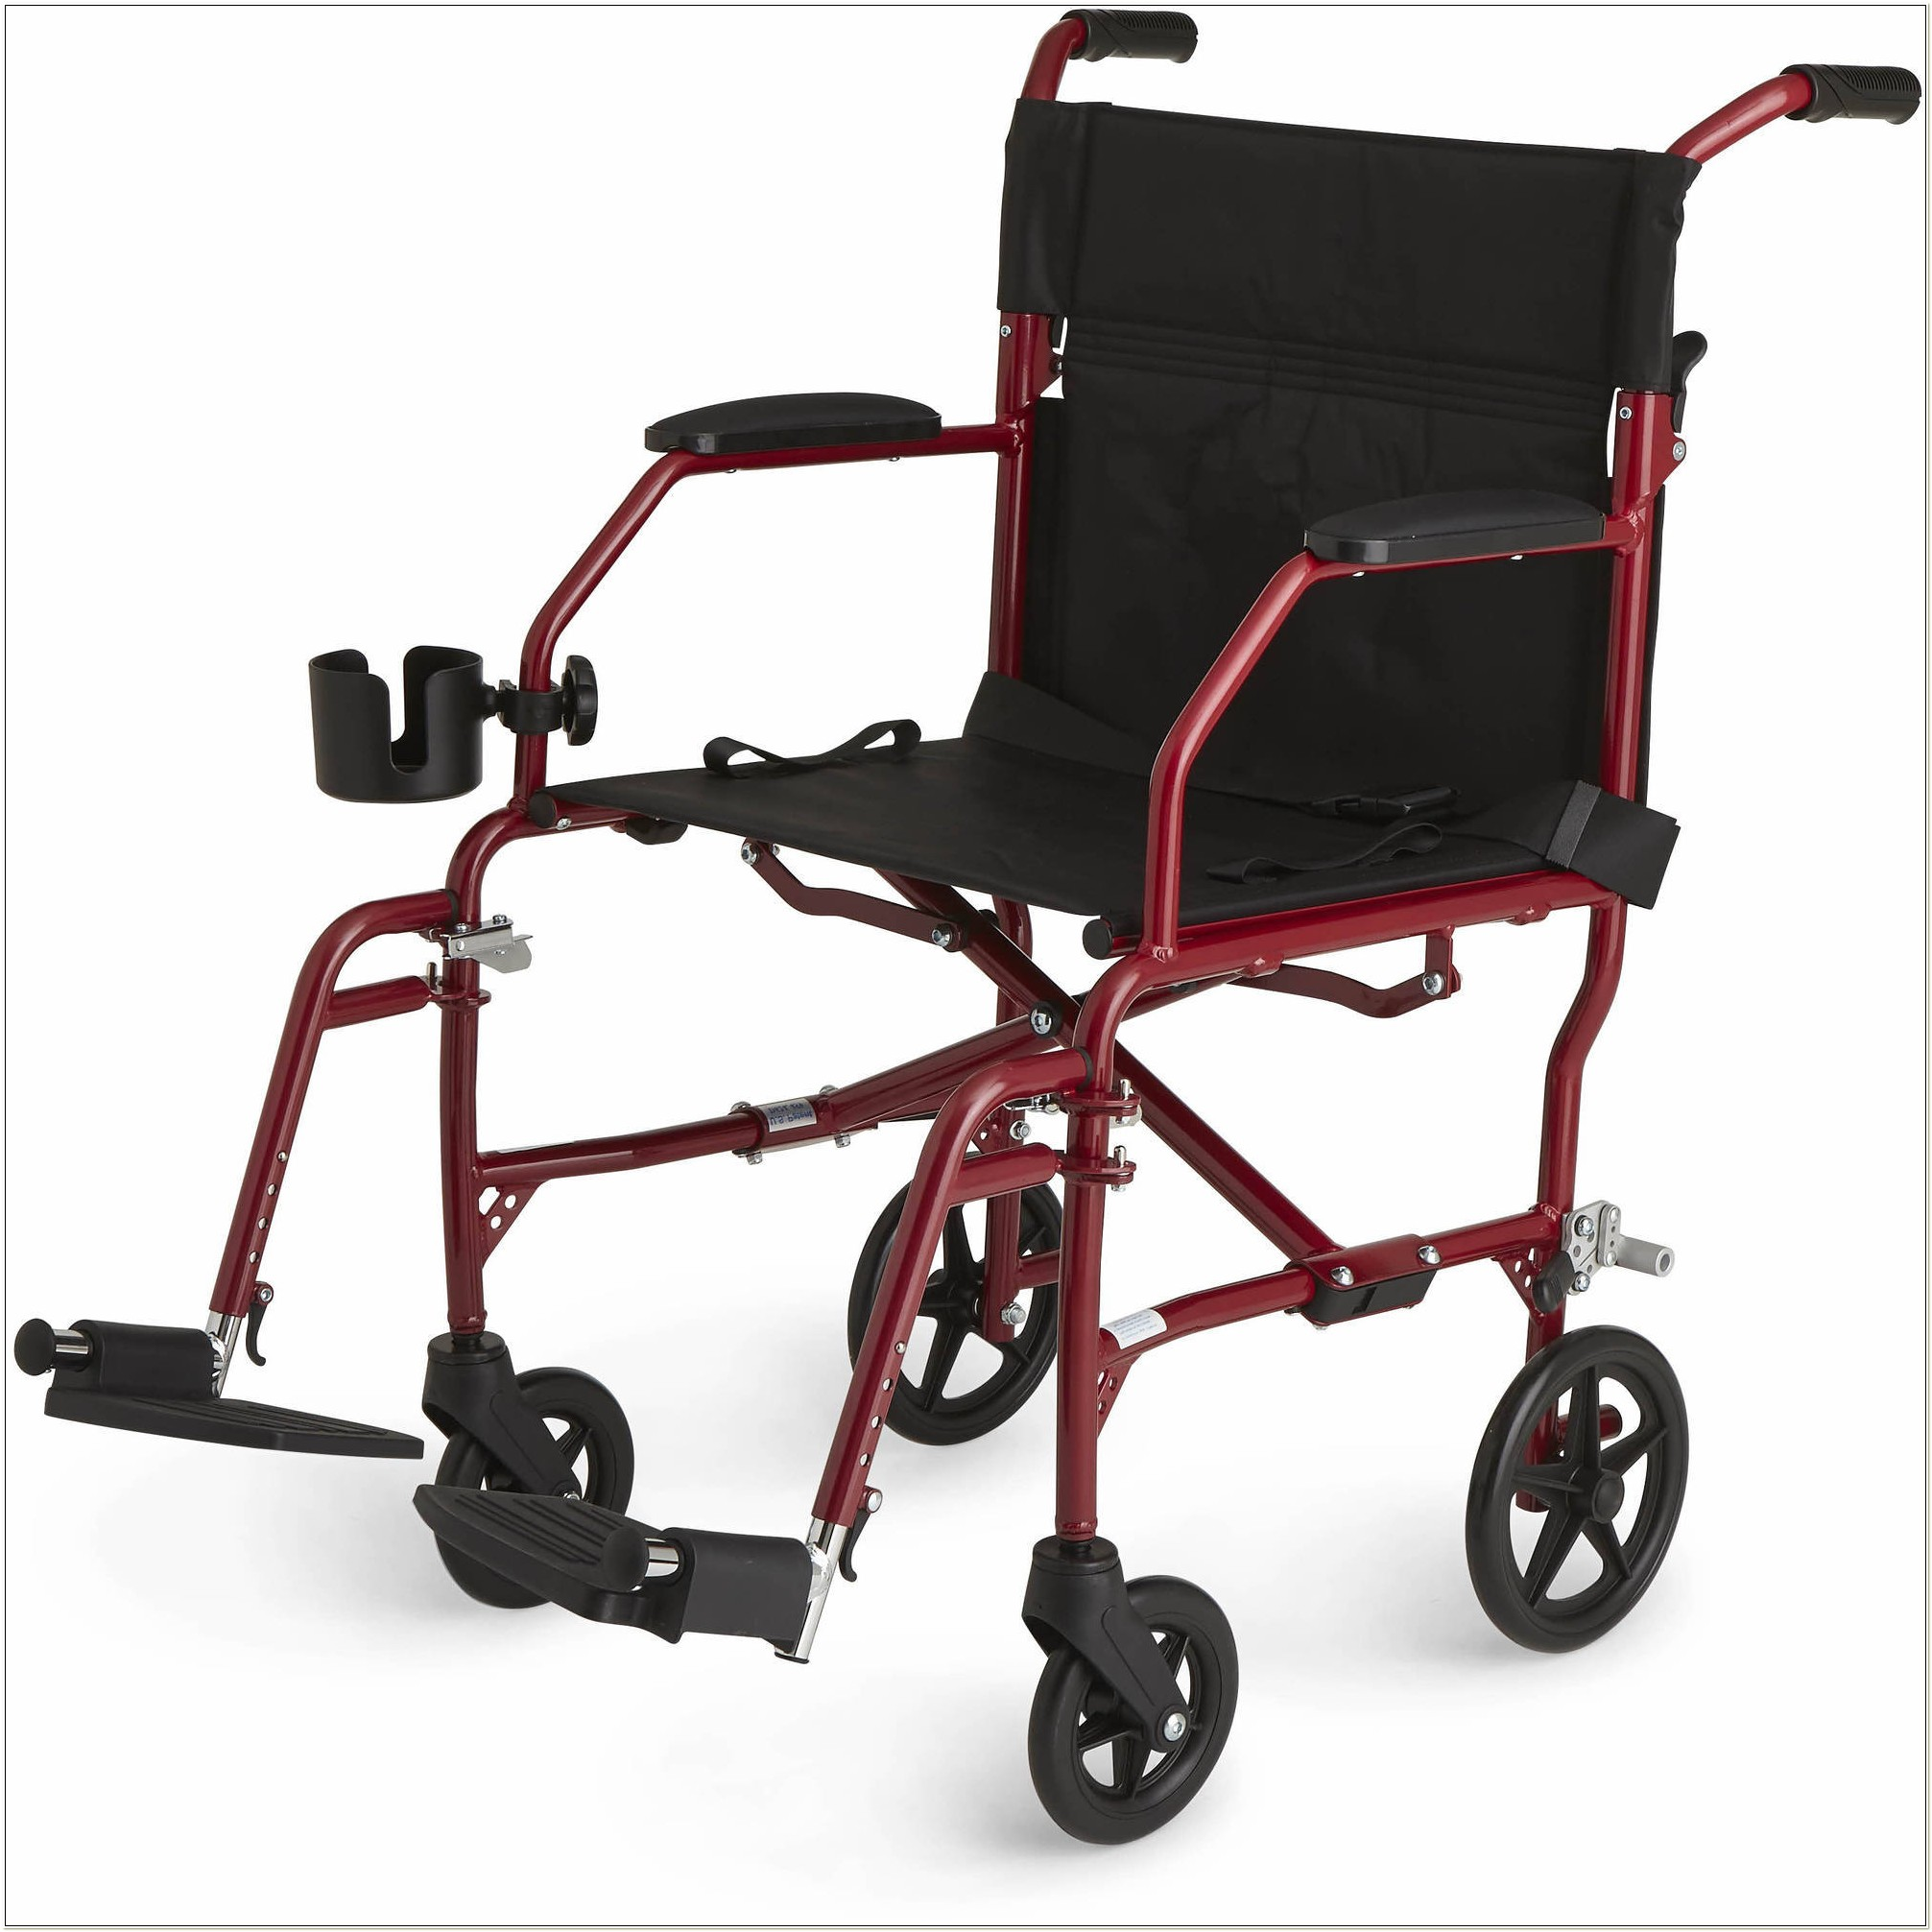 Medline Ultra Lightweight Transport Chair